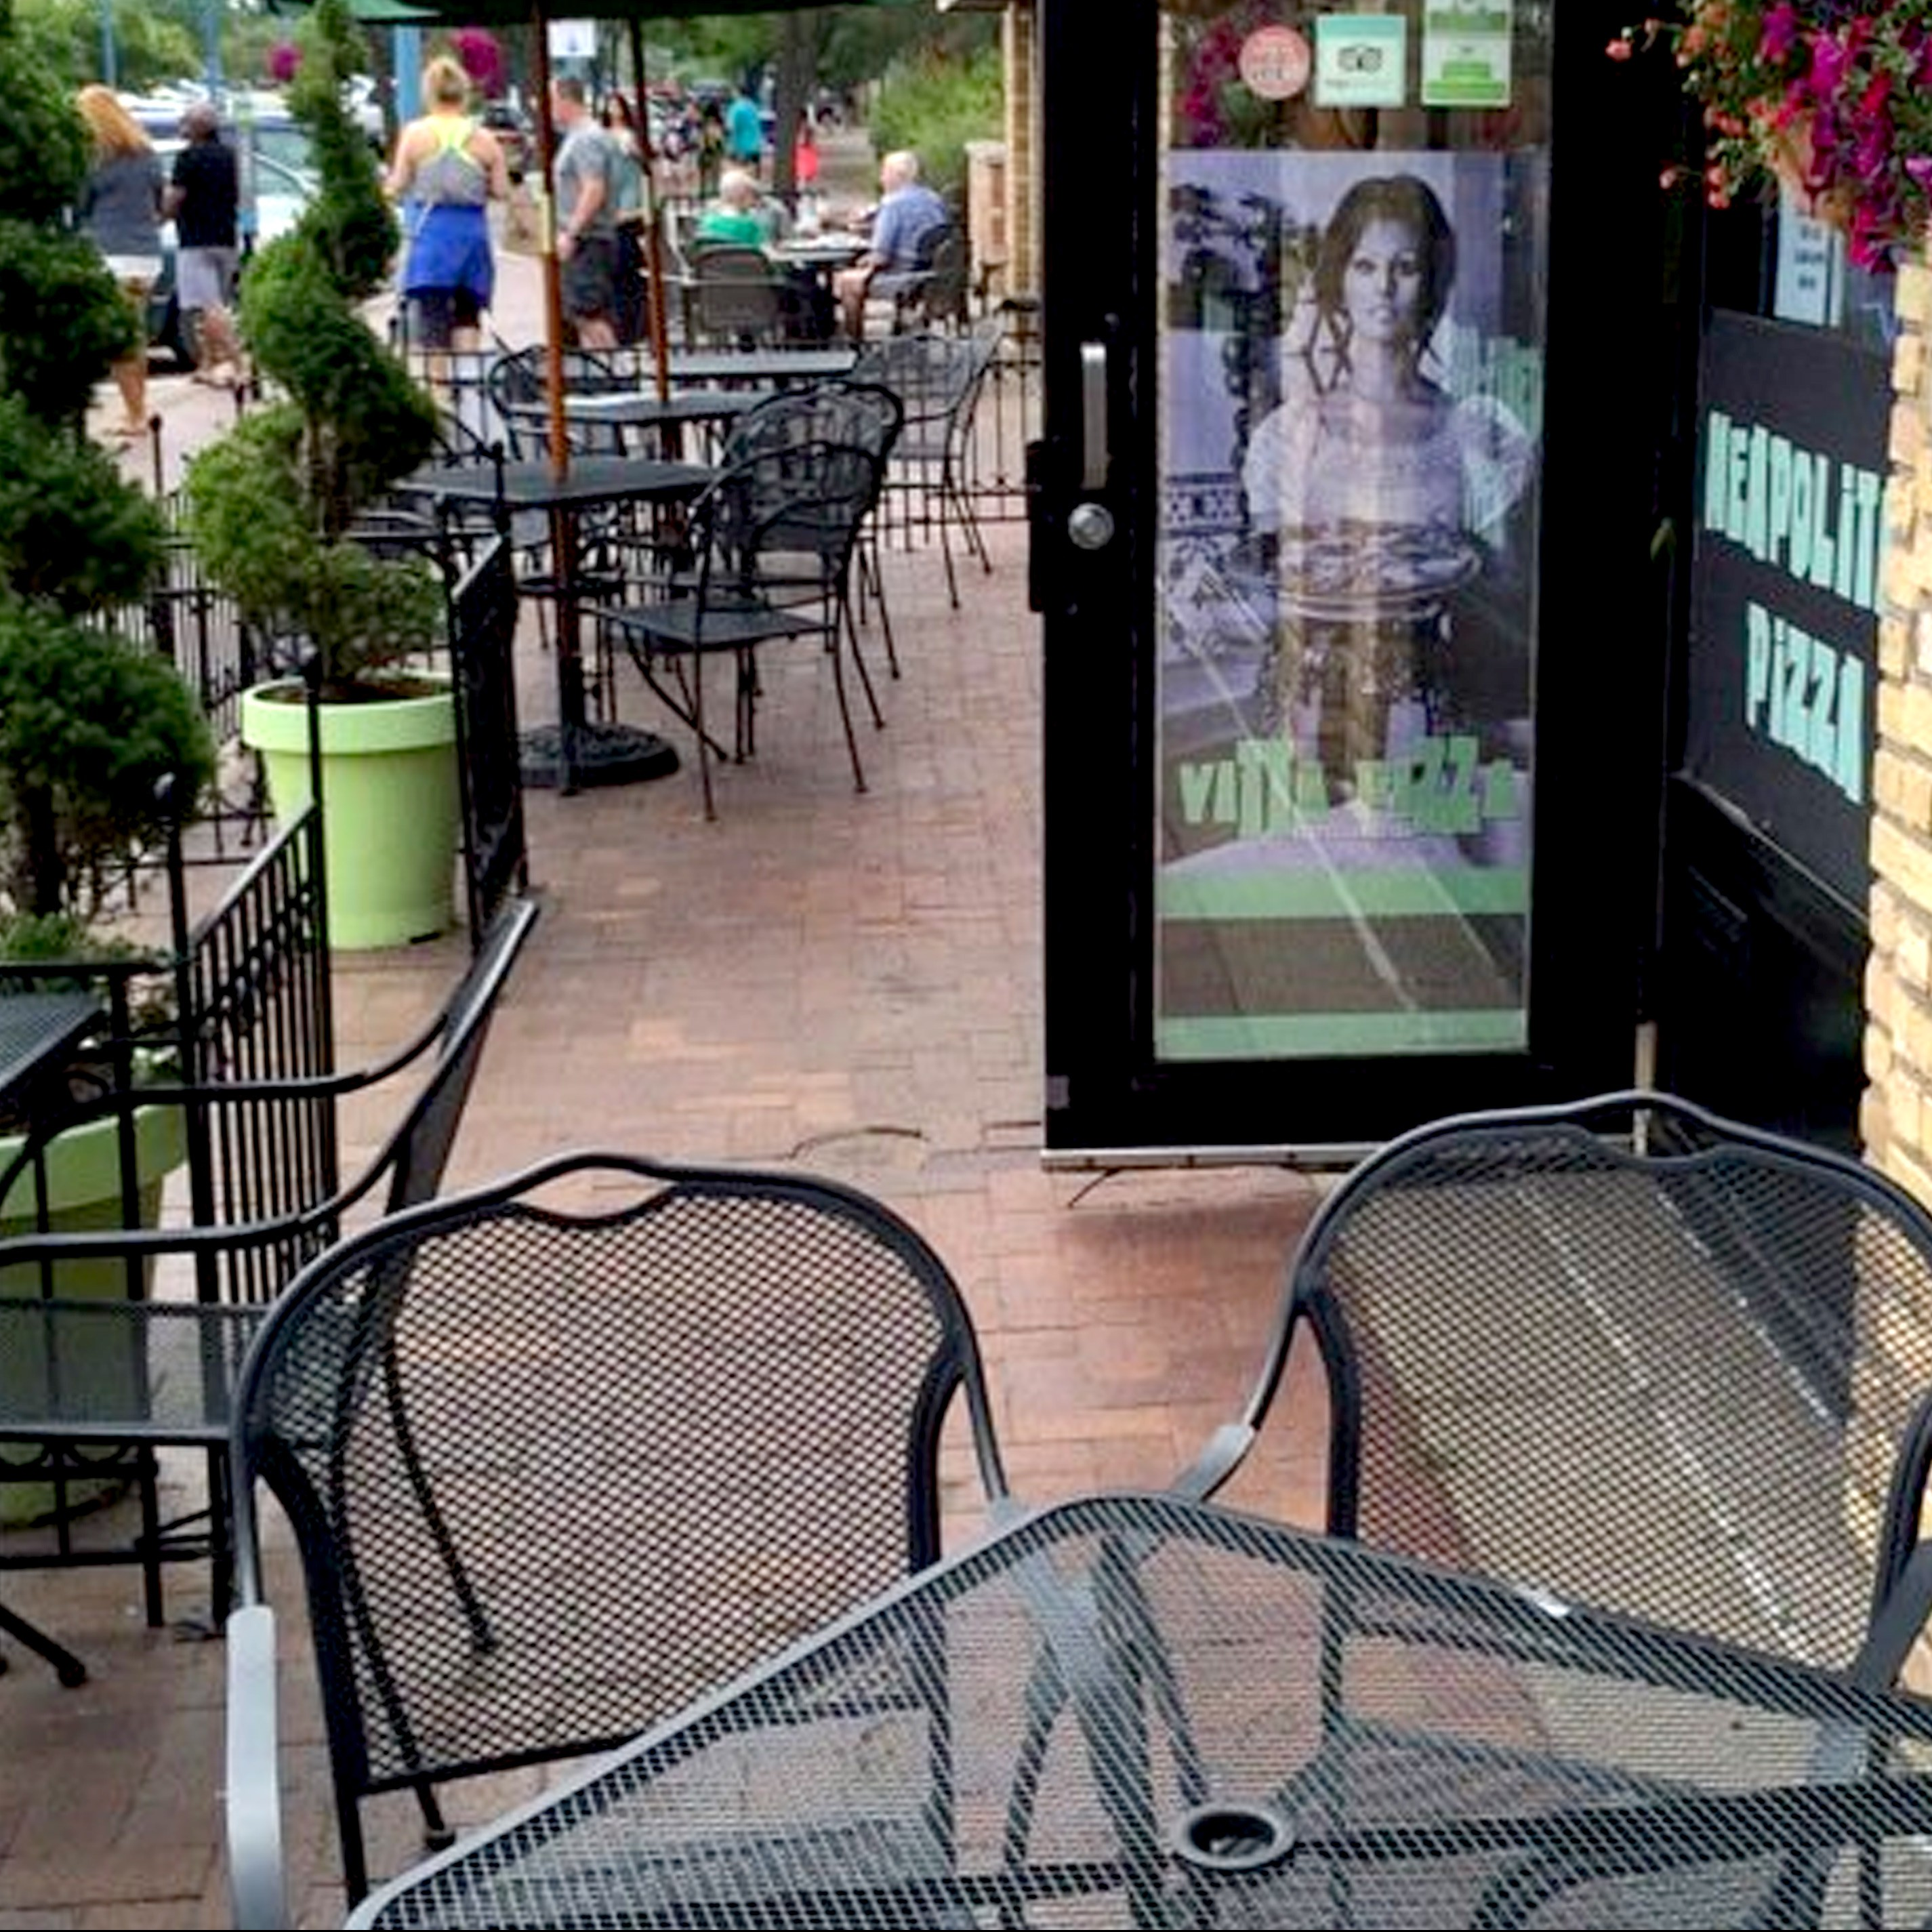 Vitta Pizza outdoor patio